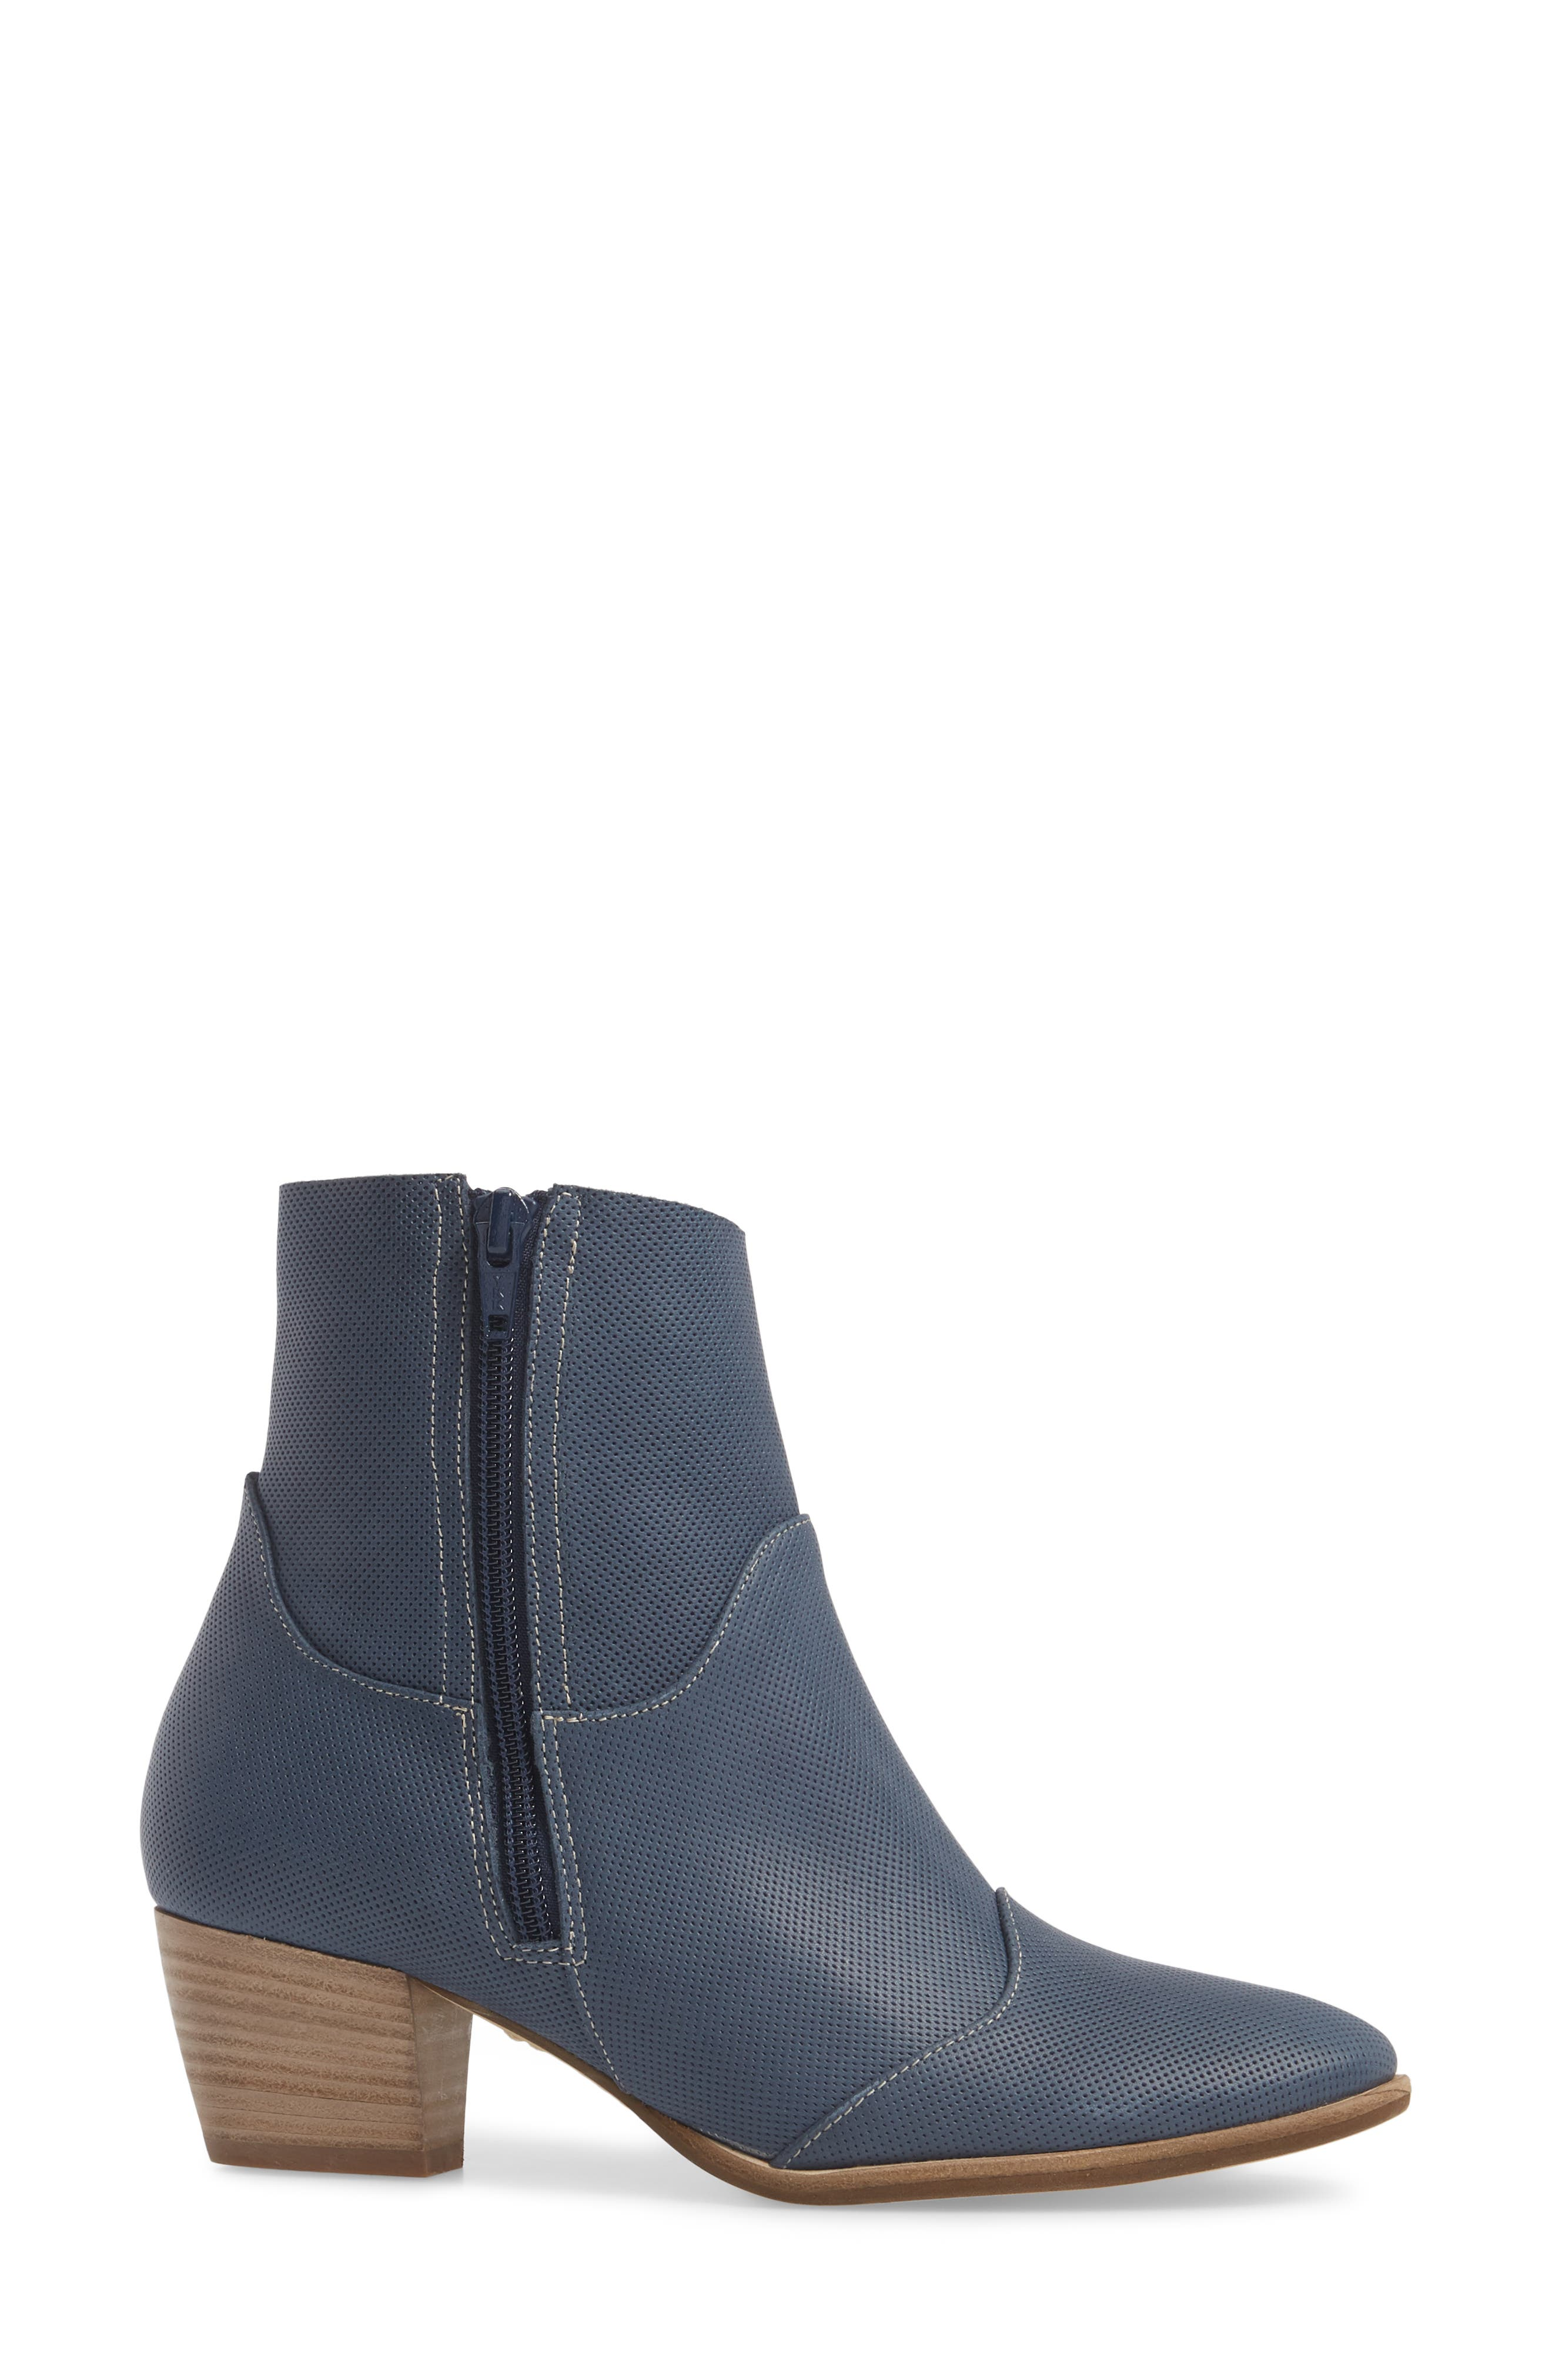 Robin Bootie,                             Alternate thumbnail 3, color,                             Blue Leather